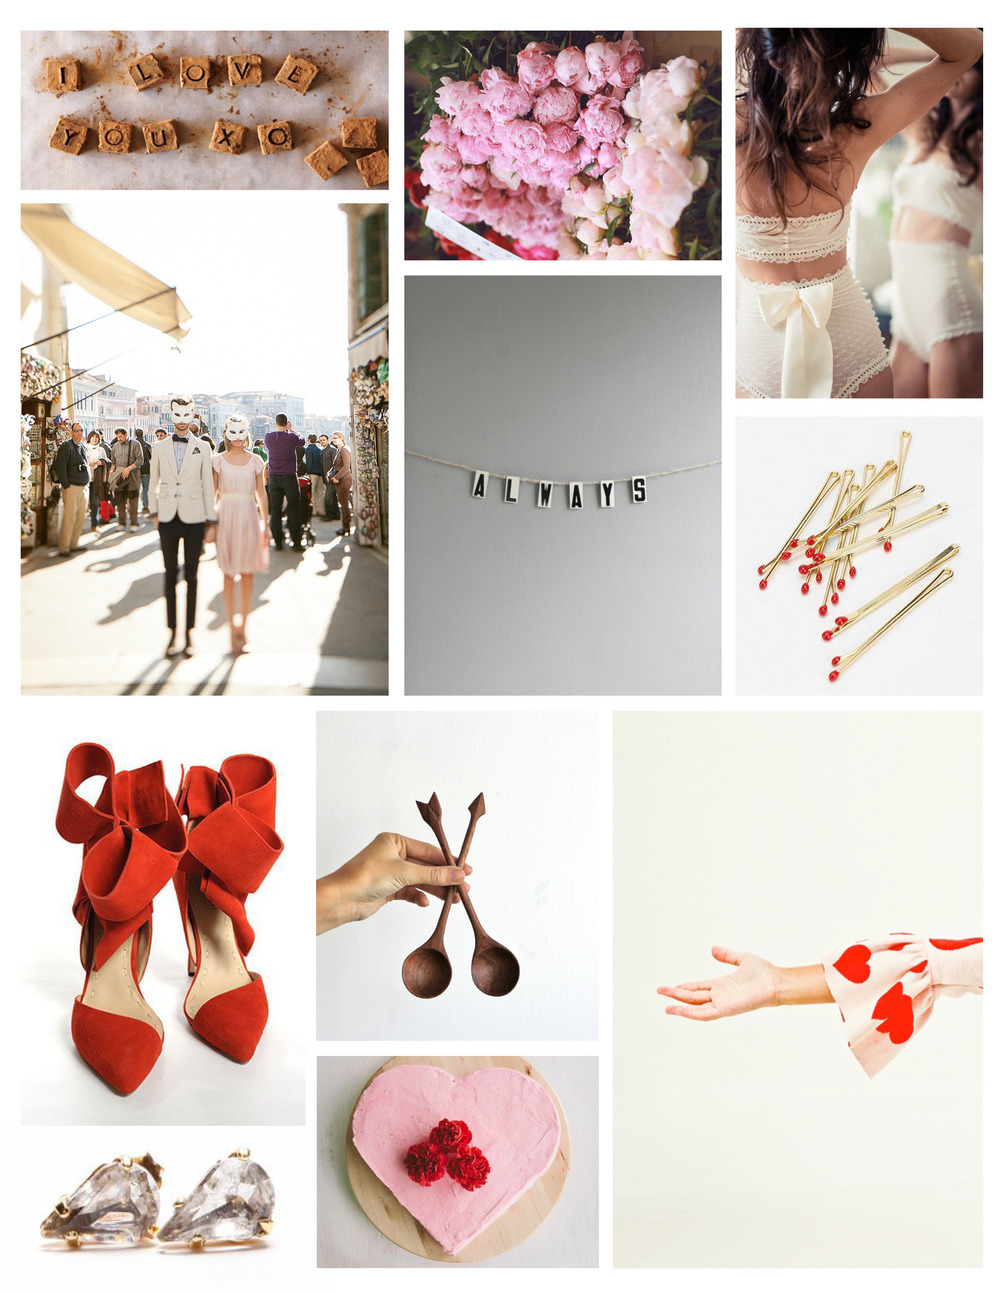 Chocolate | Flowers | Lingerie | Couple | Always Bunting | Bobby Pins | Shoes | Spoons | Sleeve | Earrings | Cake